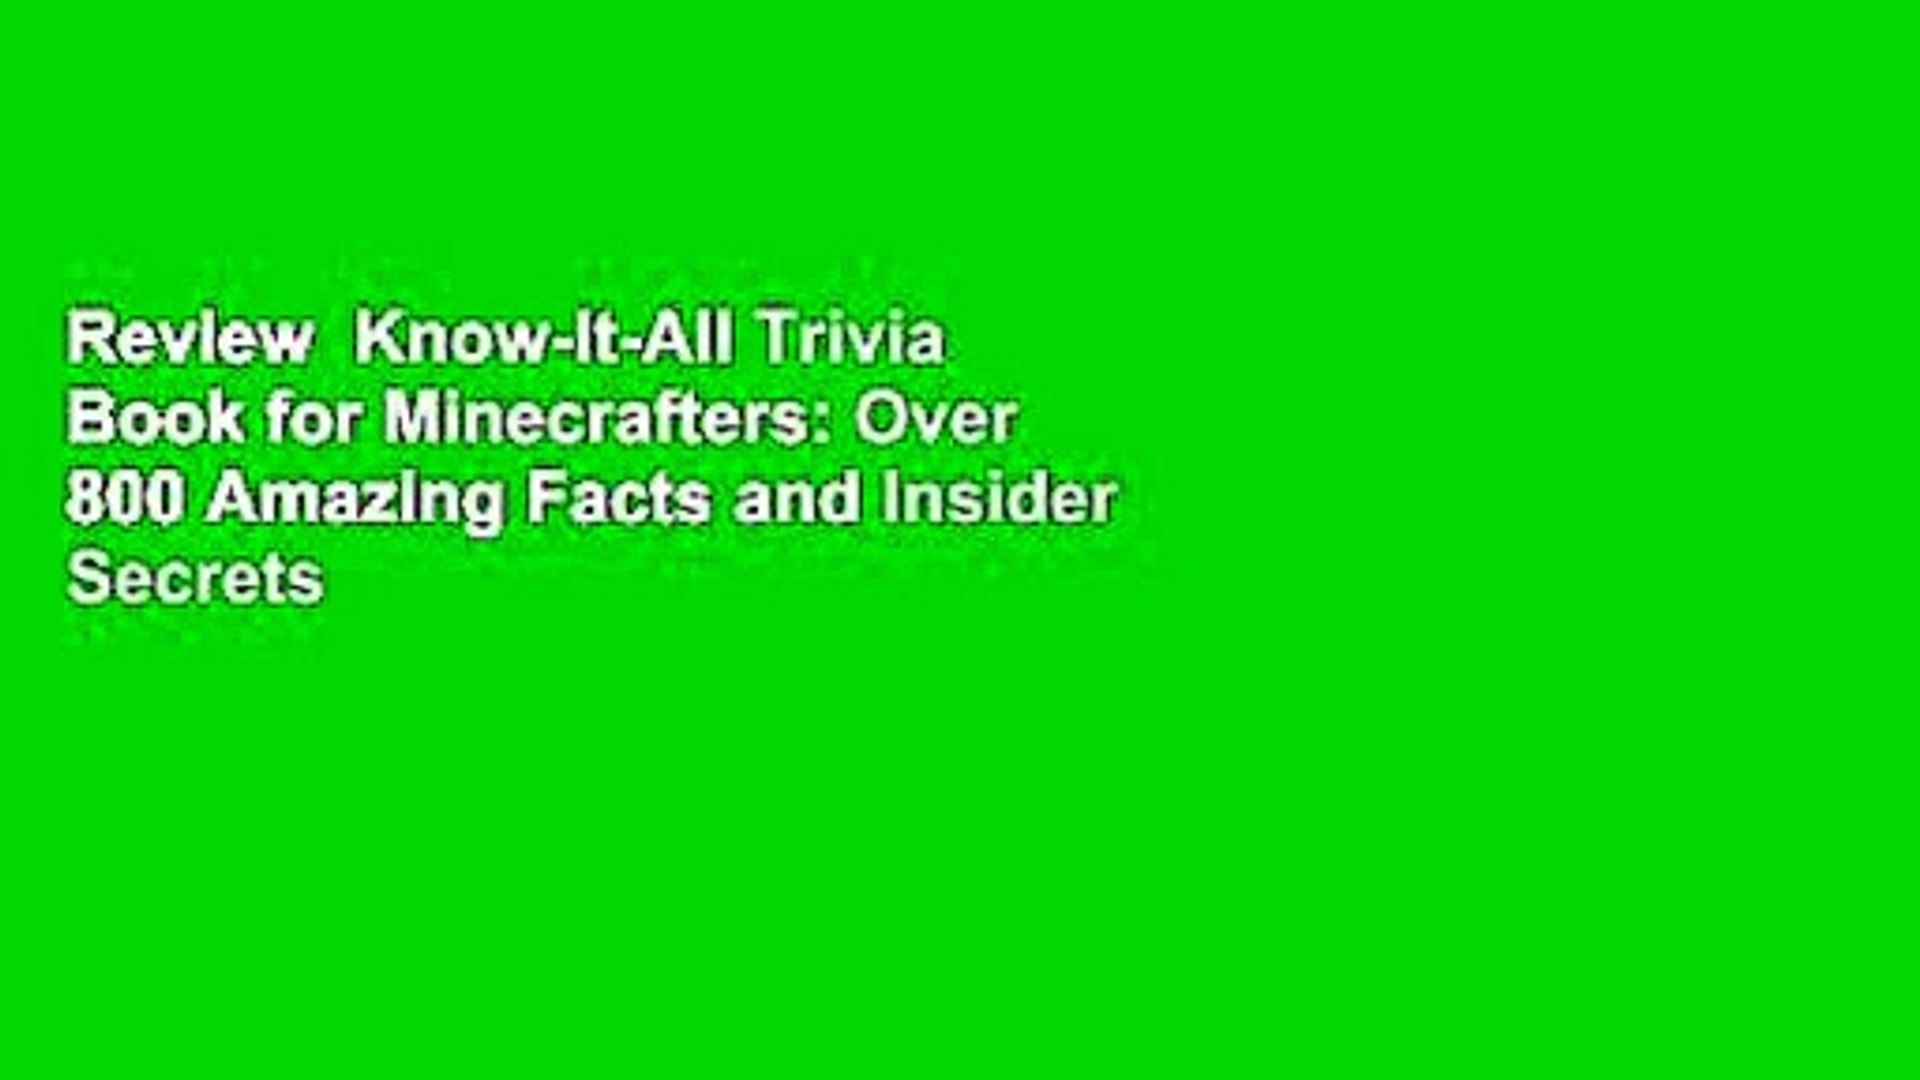 Review  Know-It-All Trivia Book for Minecrafters: Over 800 Amazing Facts and Insider Secrets